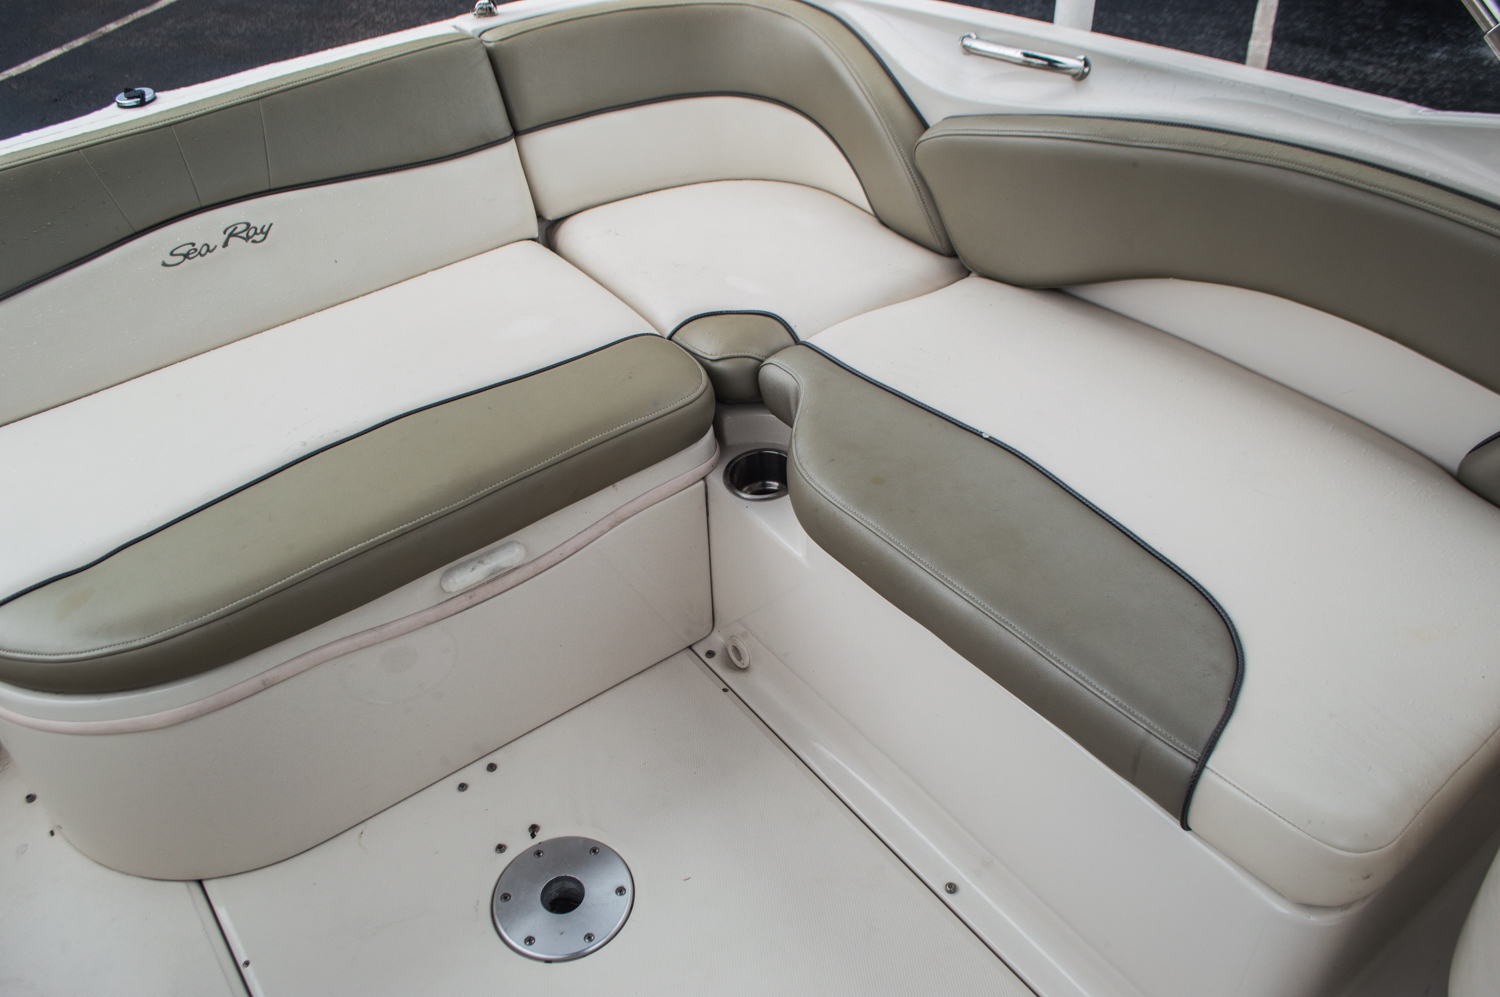 Thumbnail 33 for Used 2005 Sea Ray 240 Sundeck boat for sale in West Palm Beach, FL